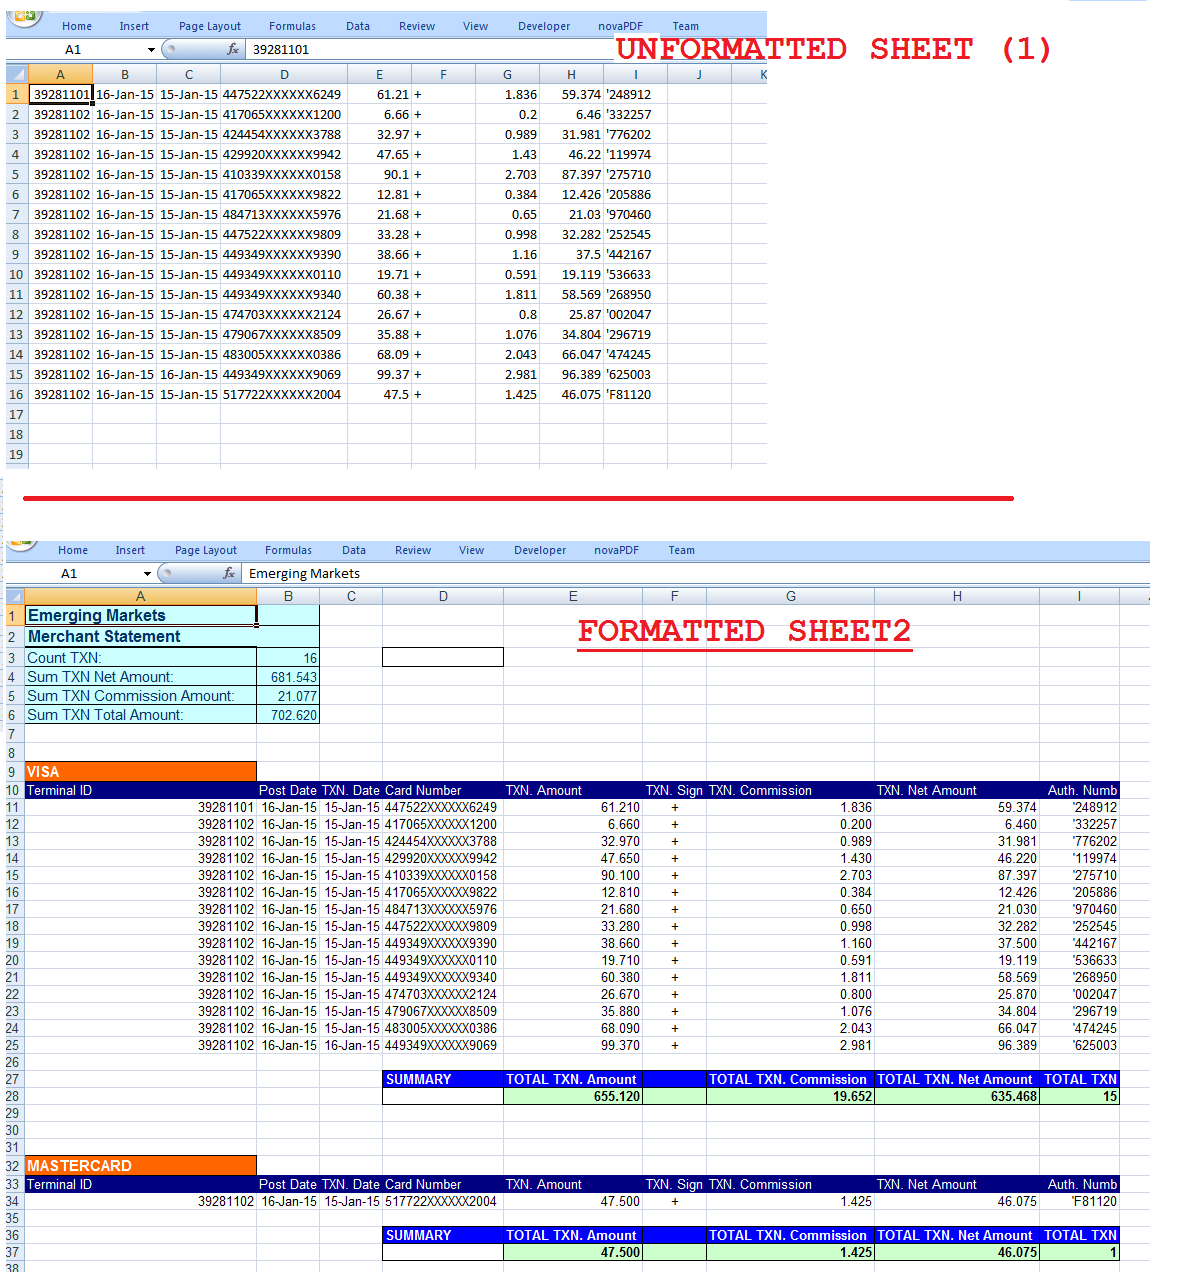 Excel Macro To Count And Sum Undefined Number Of Rows